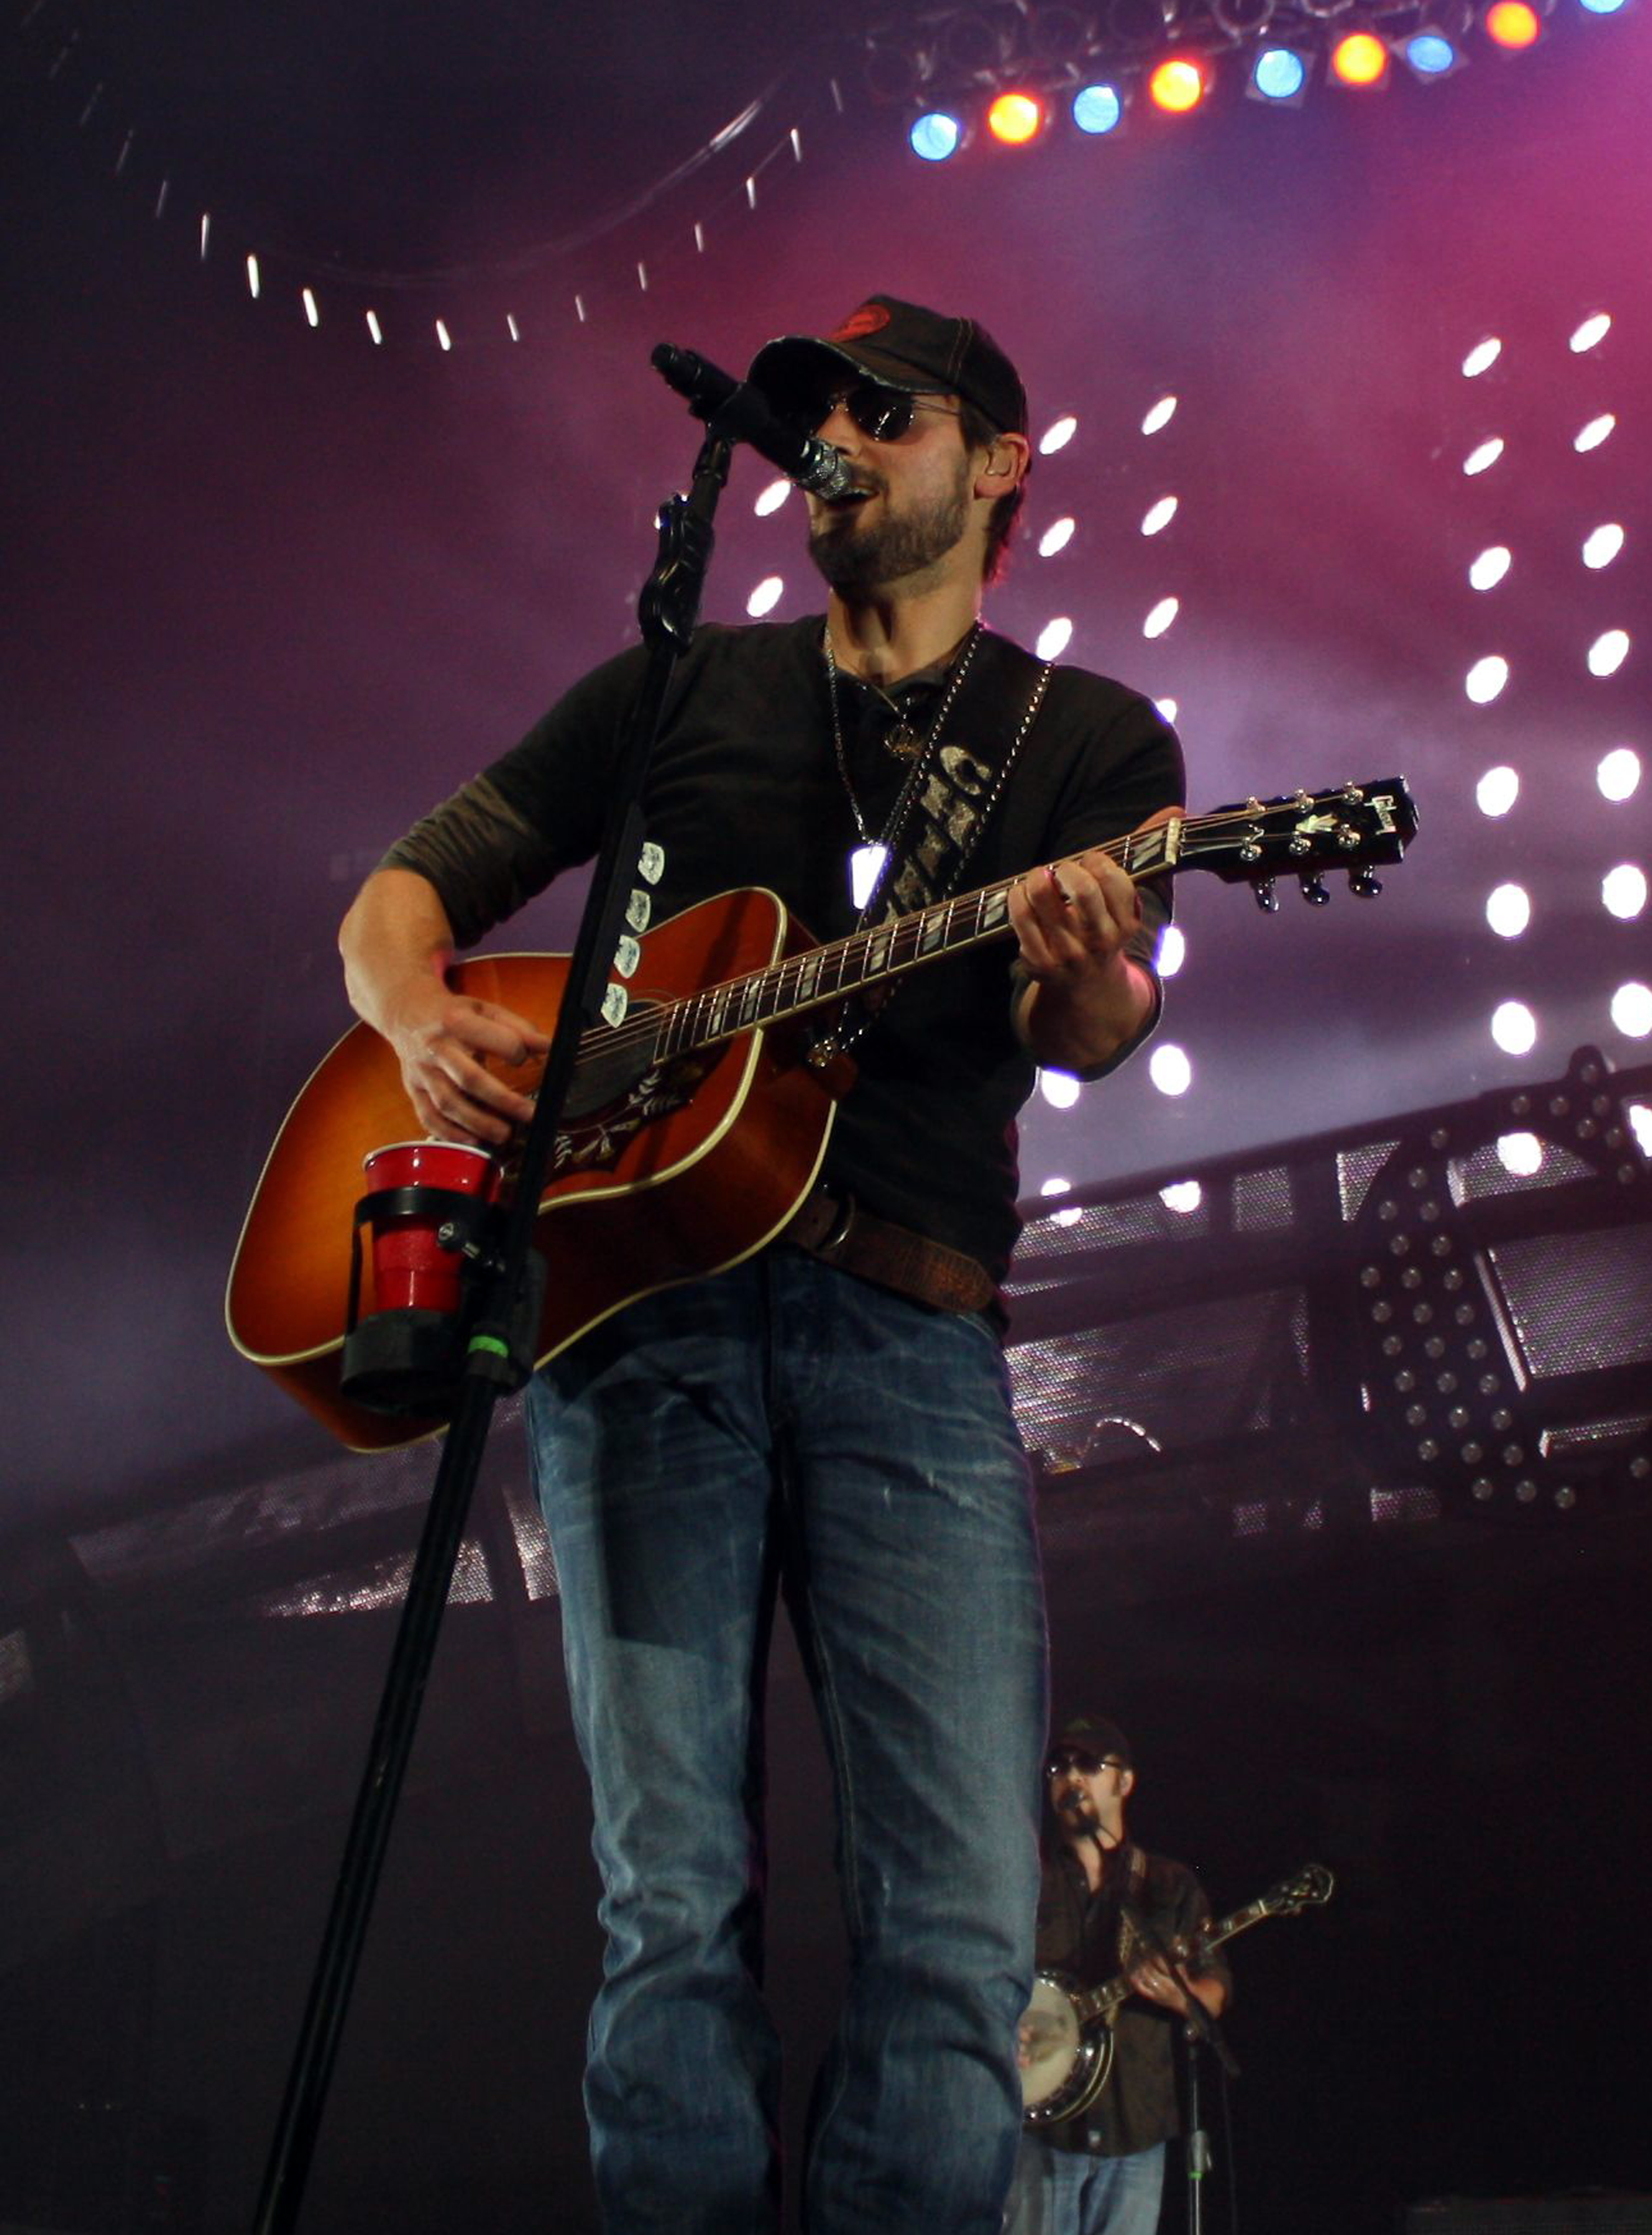 The 41-year old son of father (?) and mother(?) Eric Church in 2018 photo. Eric Church earned a  million dollar salary - leaving the net worth at 10 million in 2018